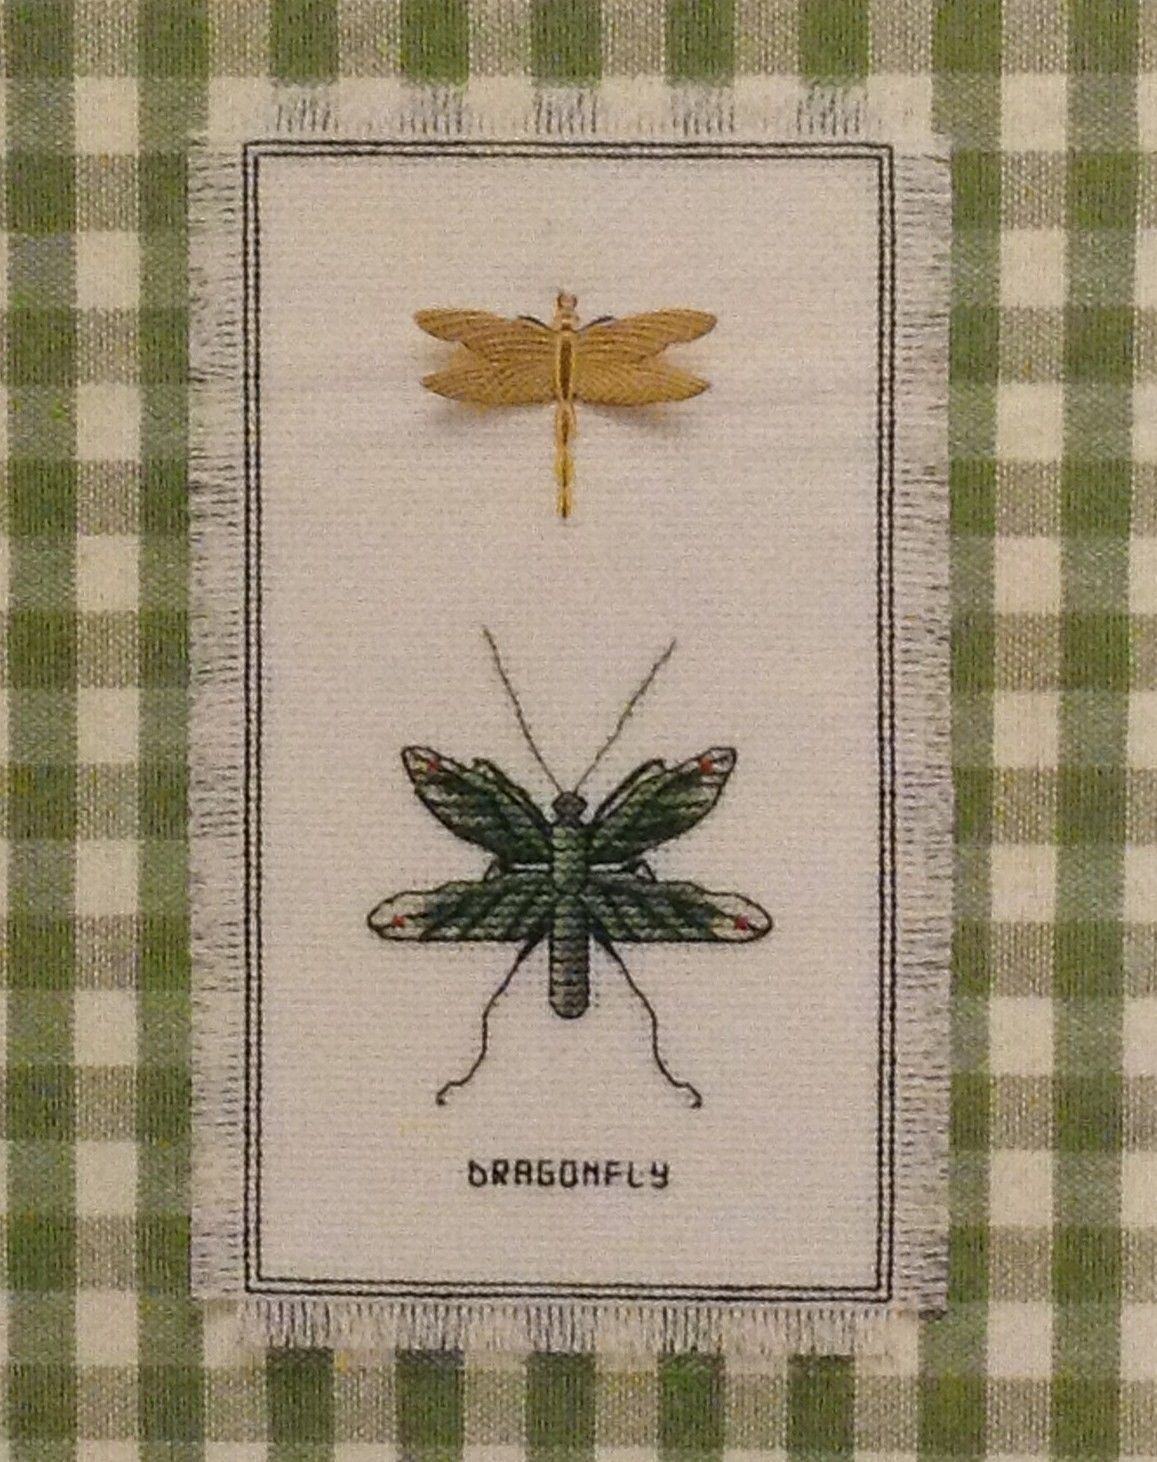 Dragonfly Duo Stamped Cross Stitch KIT Nature Collection Janlynn 18 ct Aida